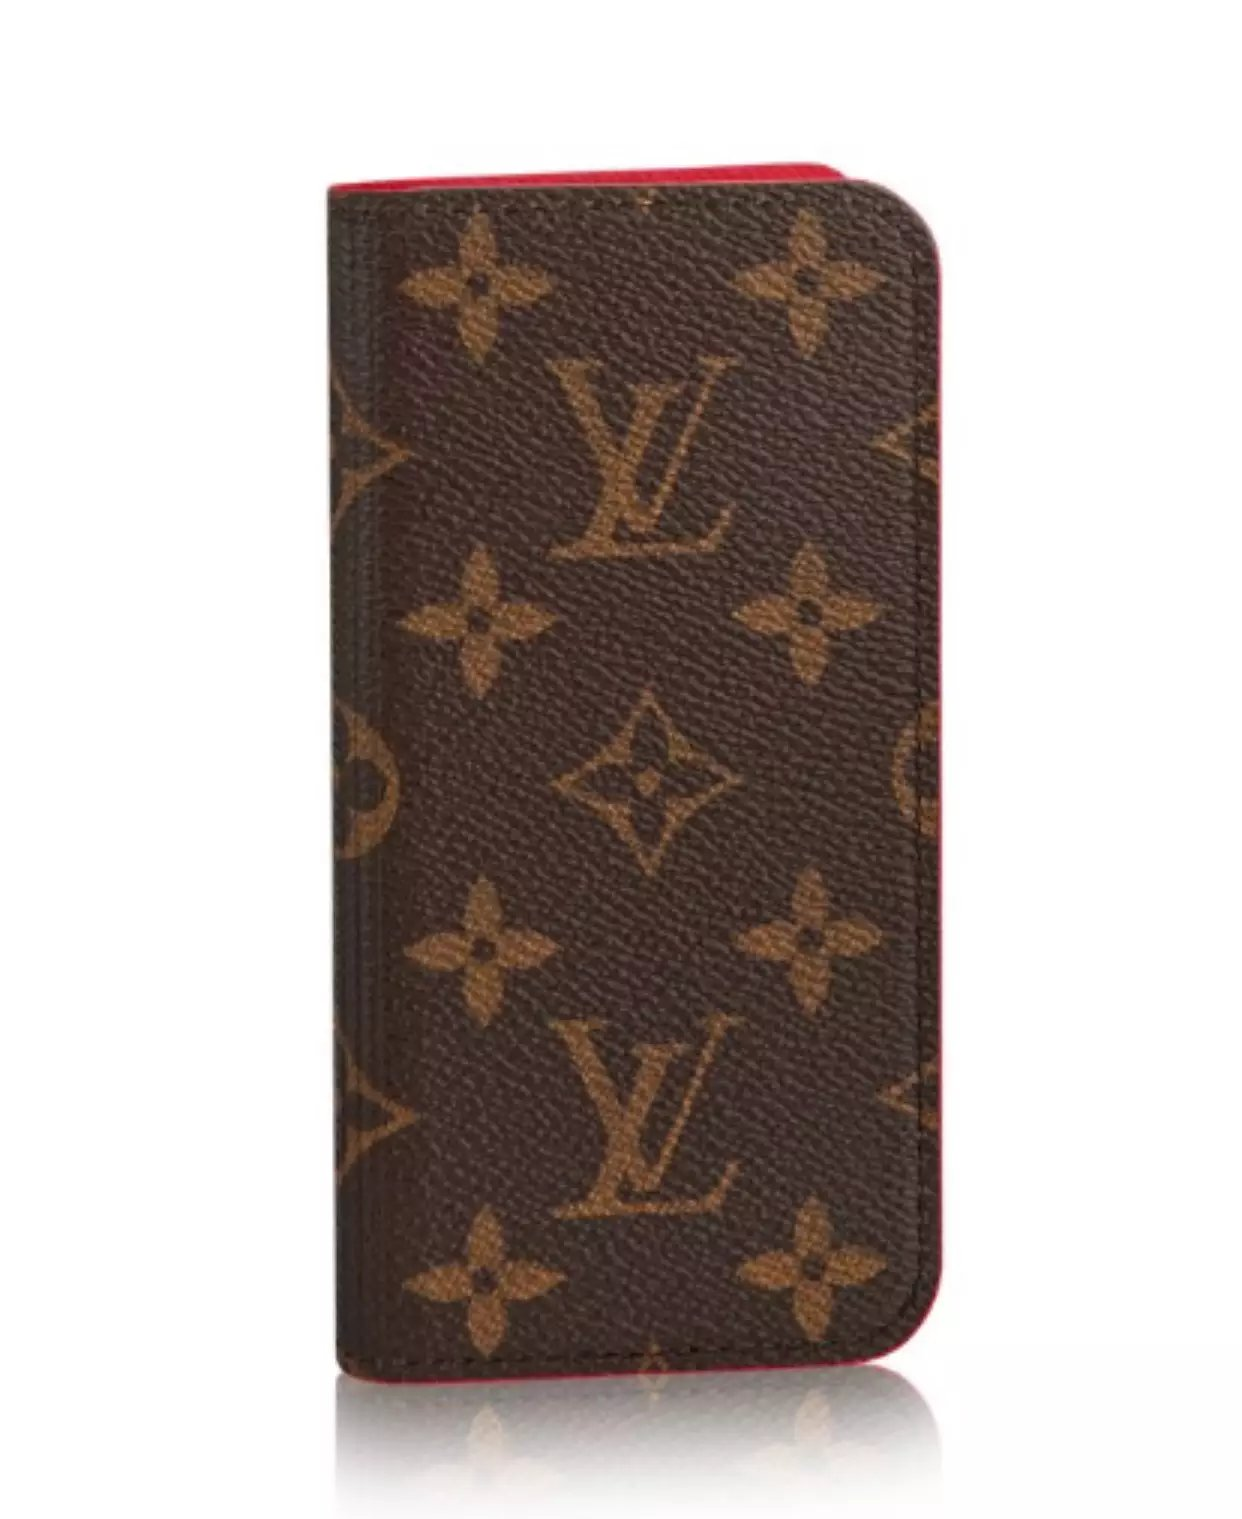 hülle für iphone iphone hüllen shop Louis Vuitton iphone6 plus hülle iphone 6 Plus ca6 gestalten iphone 6 Plus hwarz hülle iphone prei6ntwicklung iphone design hülle schutzrahmen iphone 6 Plus hüllen für das iphone 6 Plus